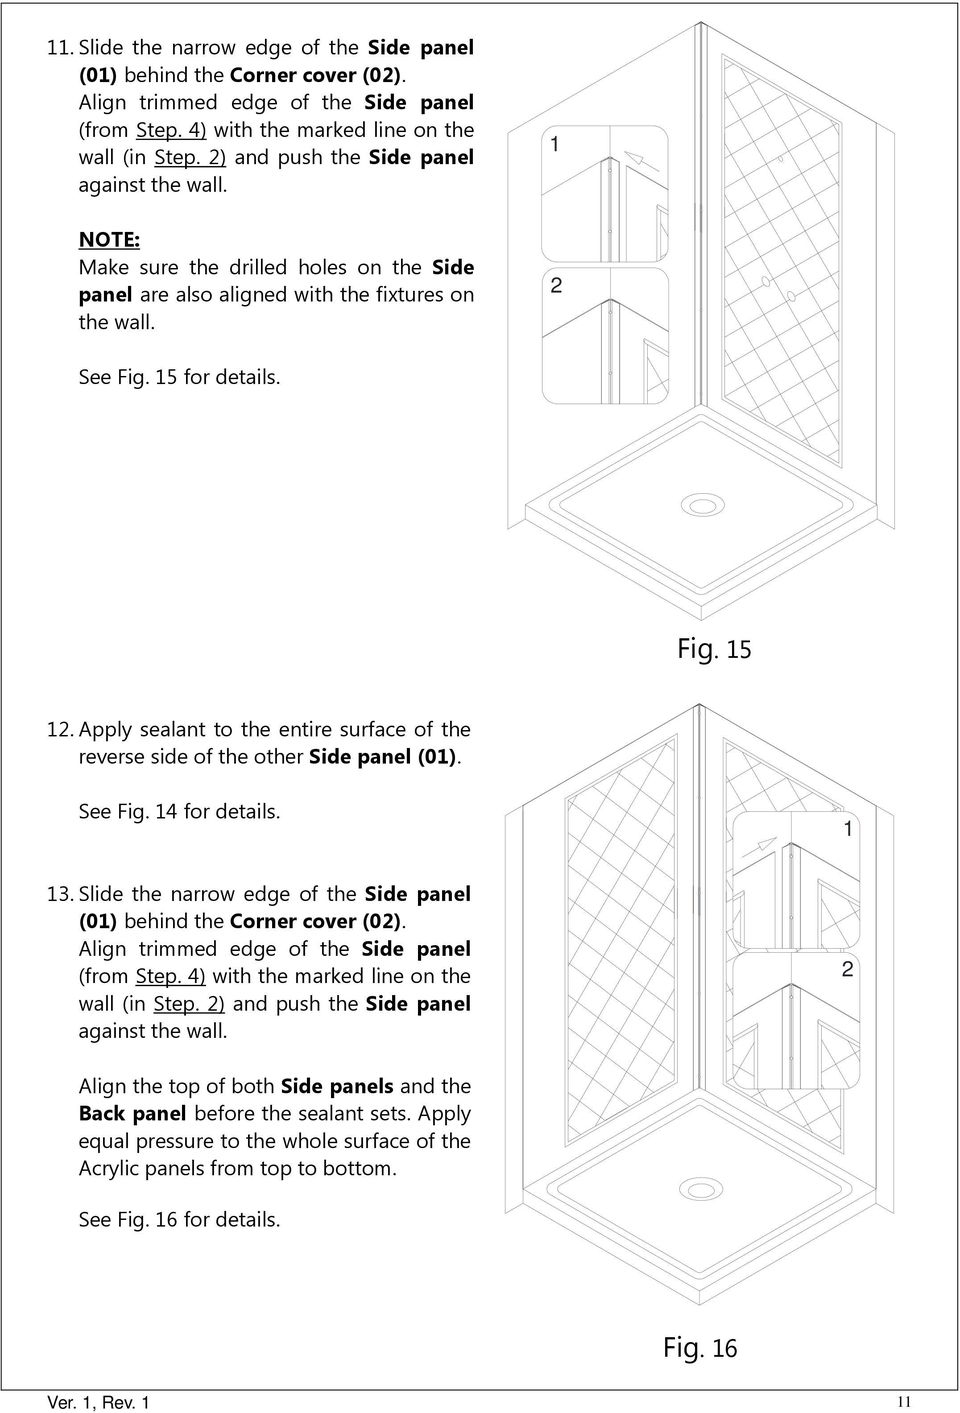 for details. Fig. 5. Apply sealant to the entire surface of the reverse side of the other Side panel (0). See Fig. 4 for details. 3 ) and push the Side panel against the wall.